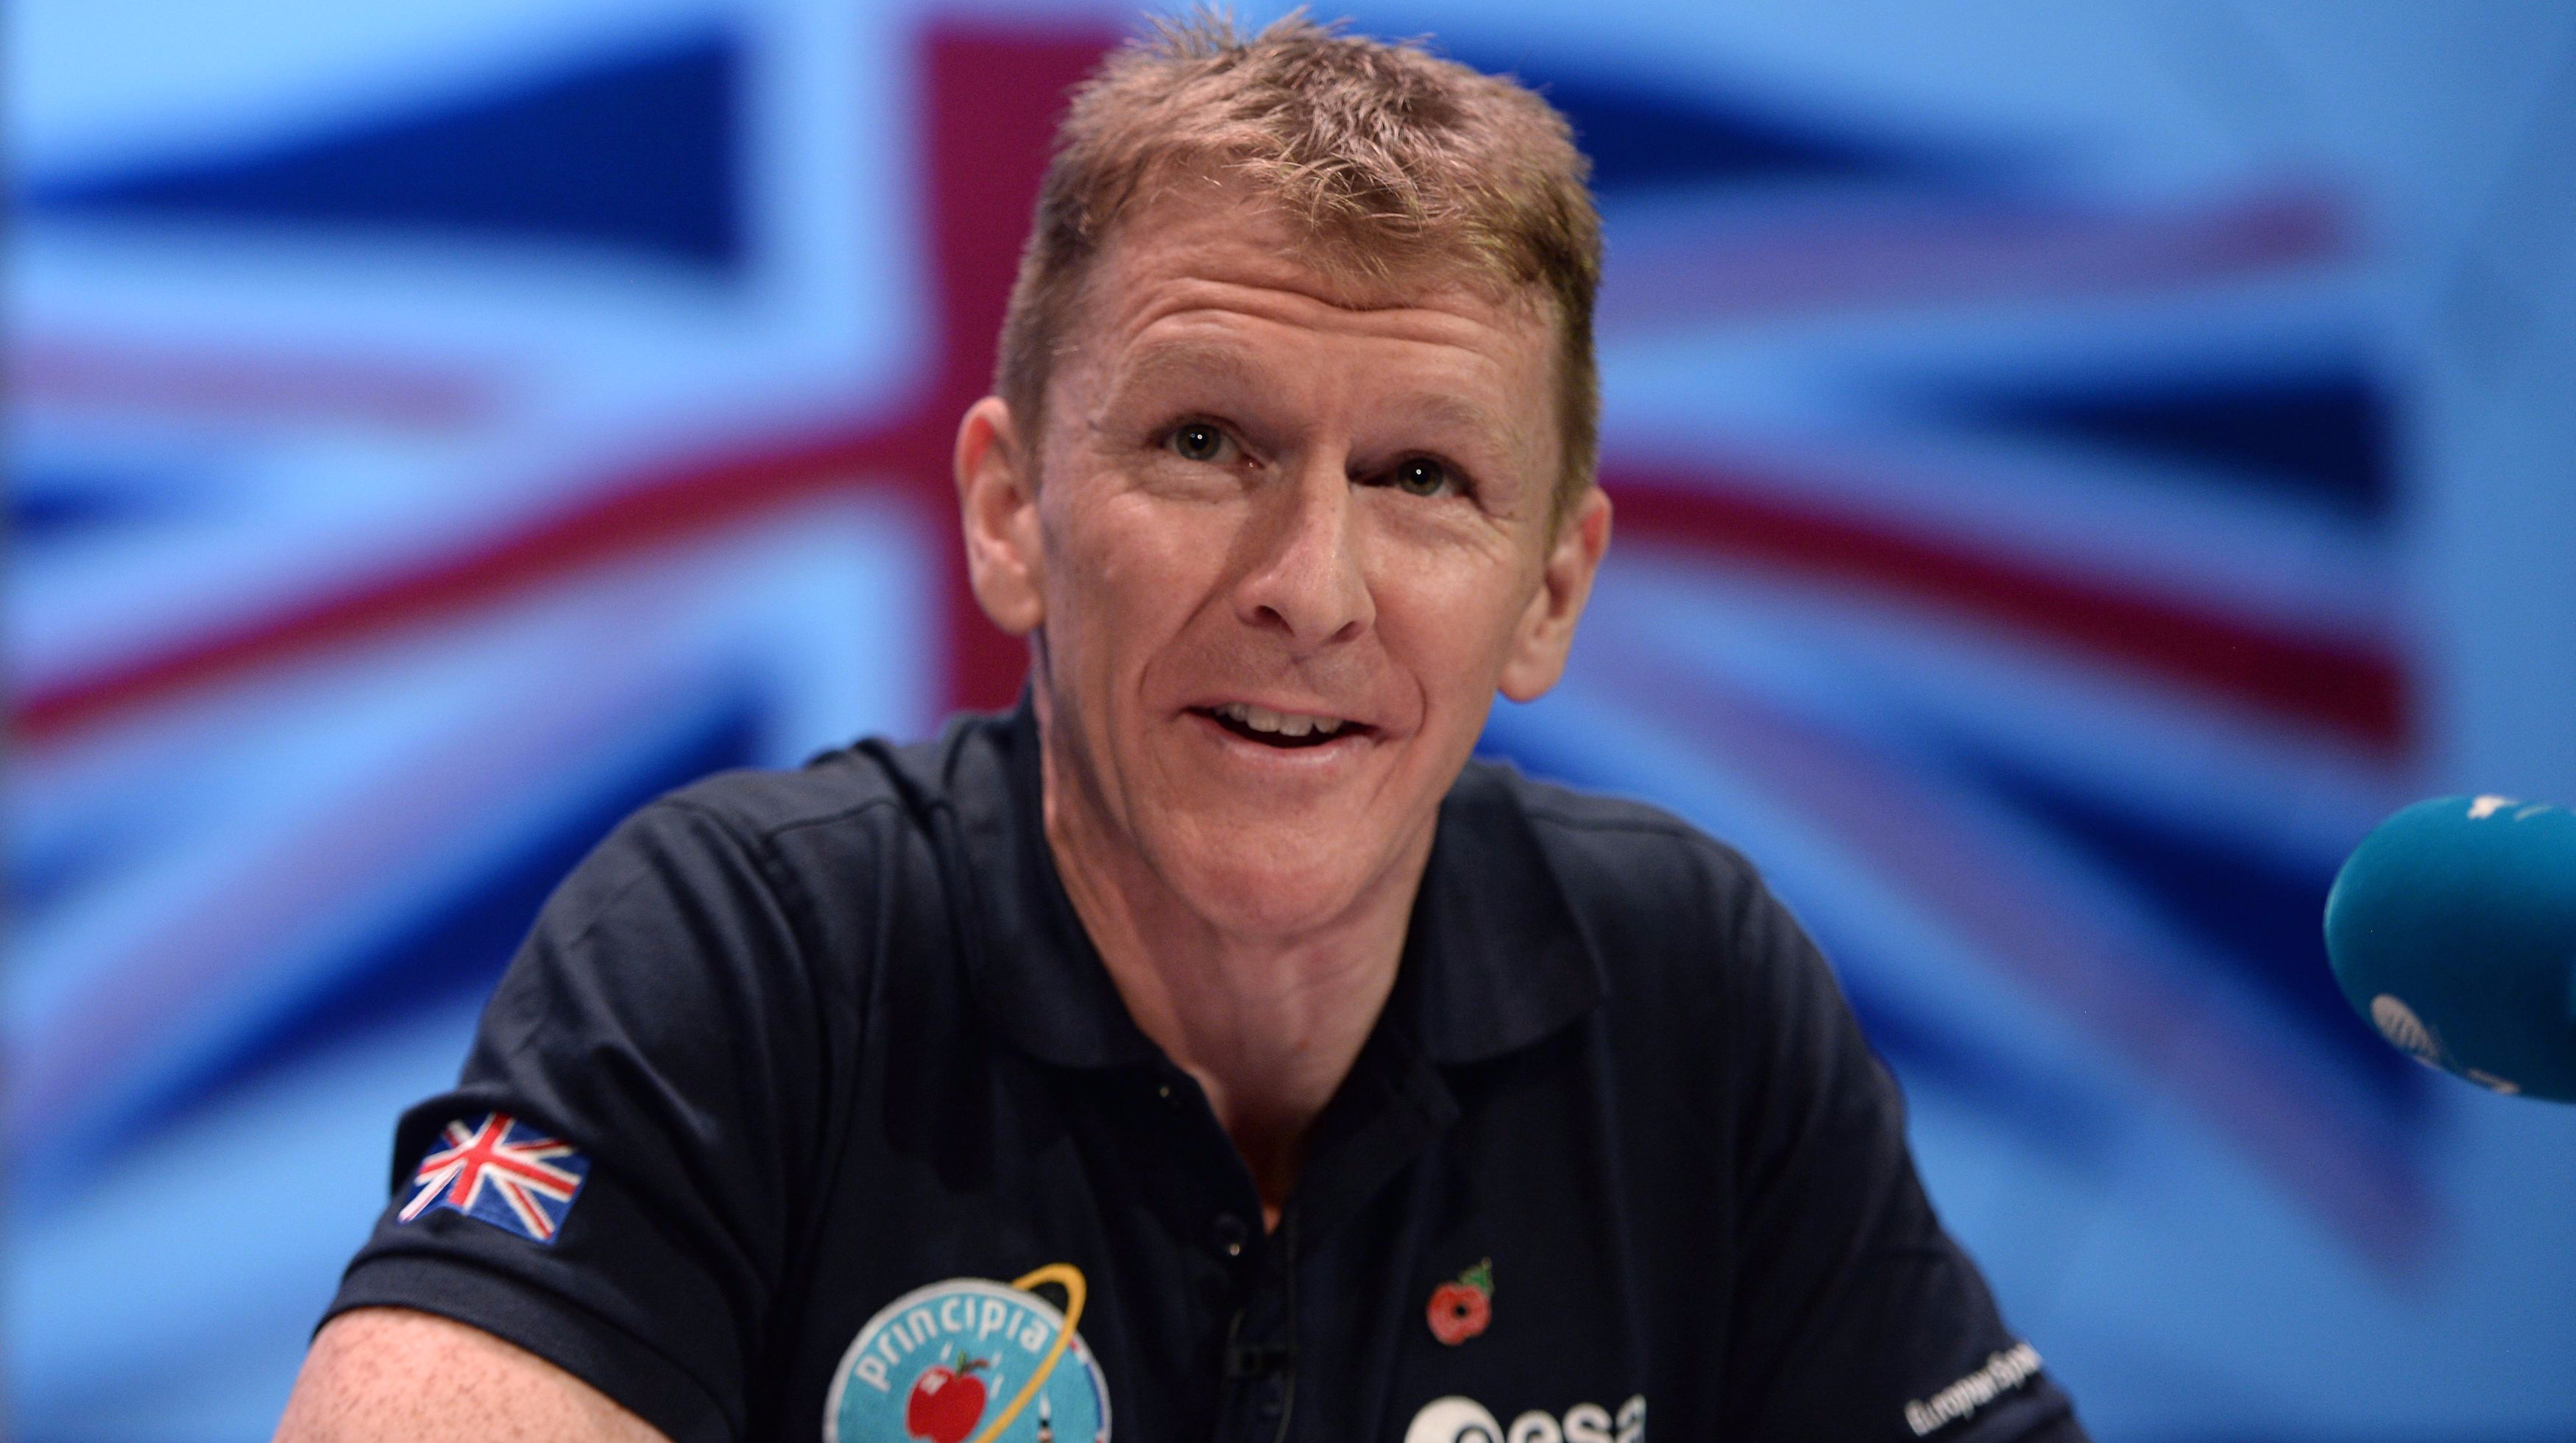 Astronaut Tim Peake answering questions ahead of running a ...